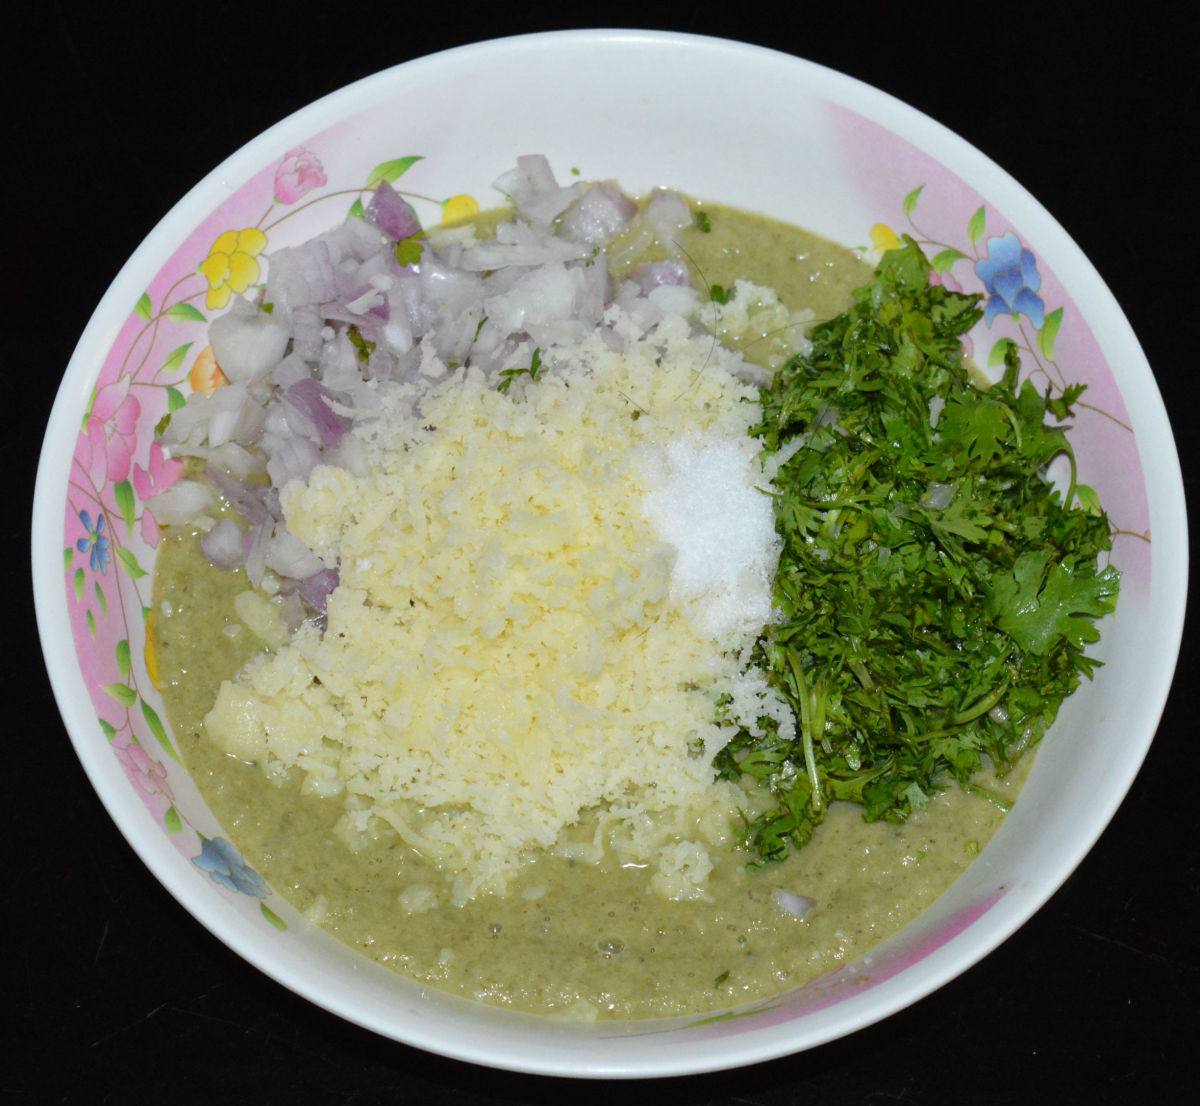 Step two: Put the batter in a mixing bowl. Add grated cheese, chopped coriander, chopped onions, and salt. Mix well.